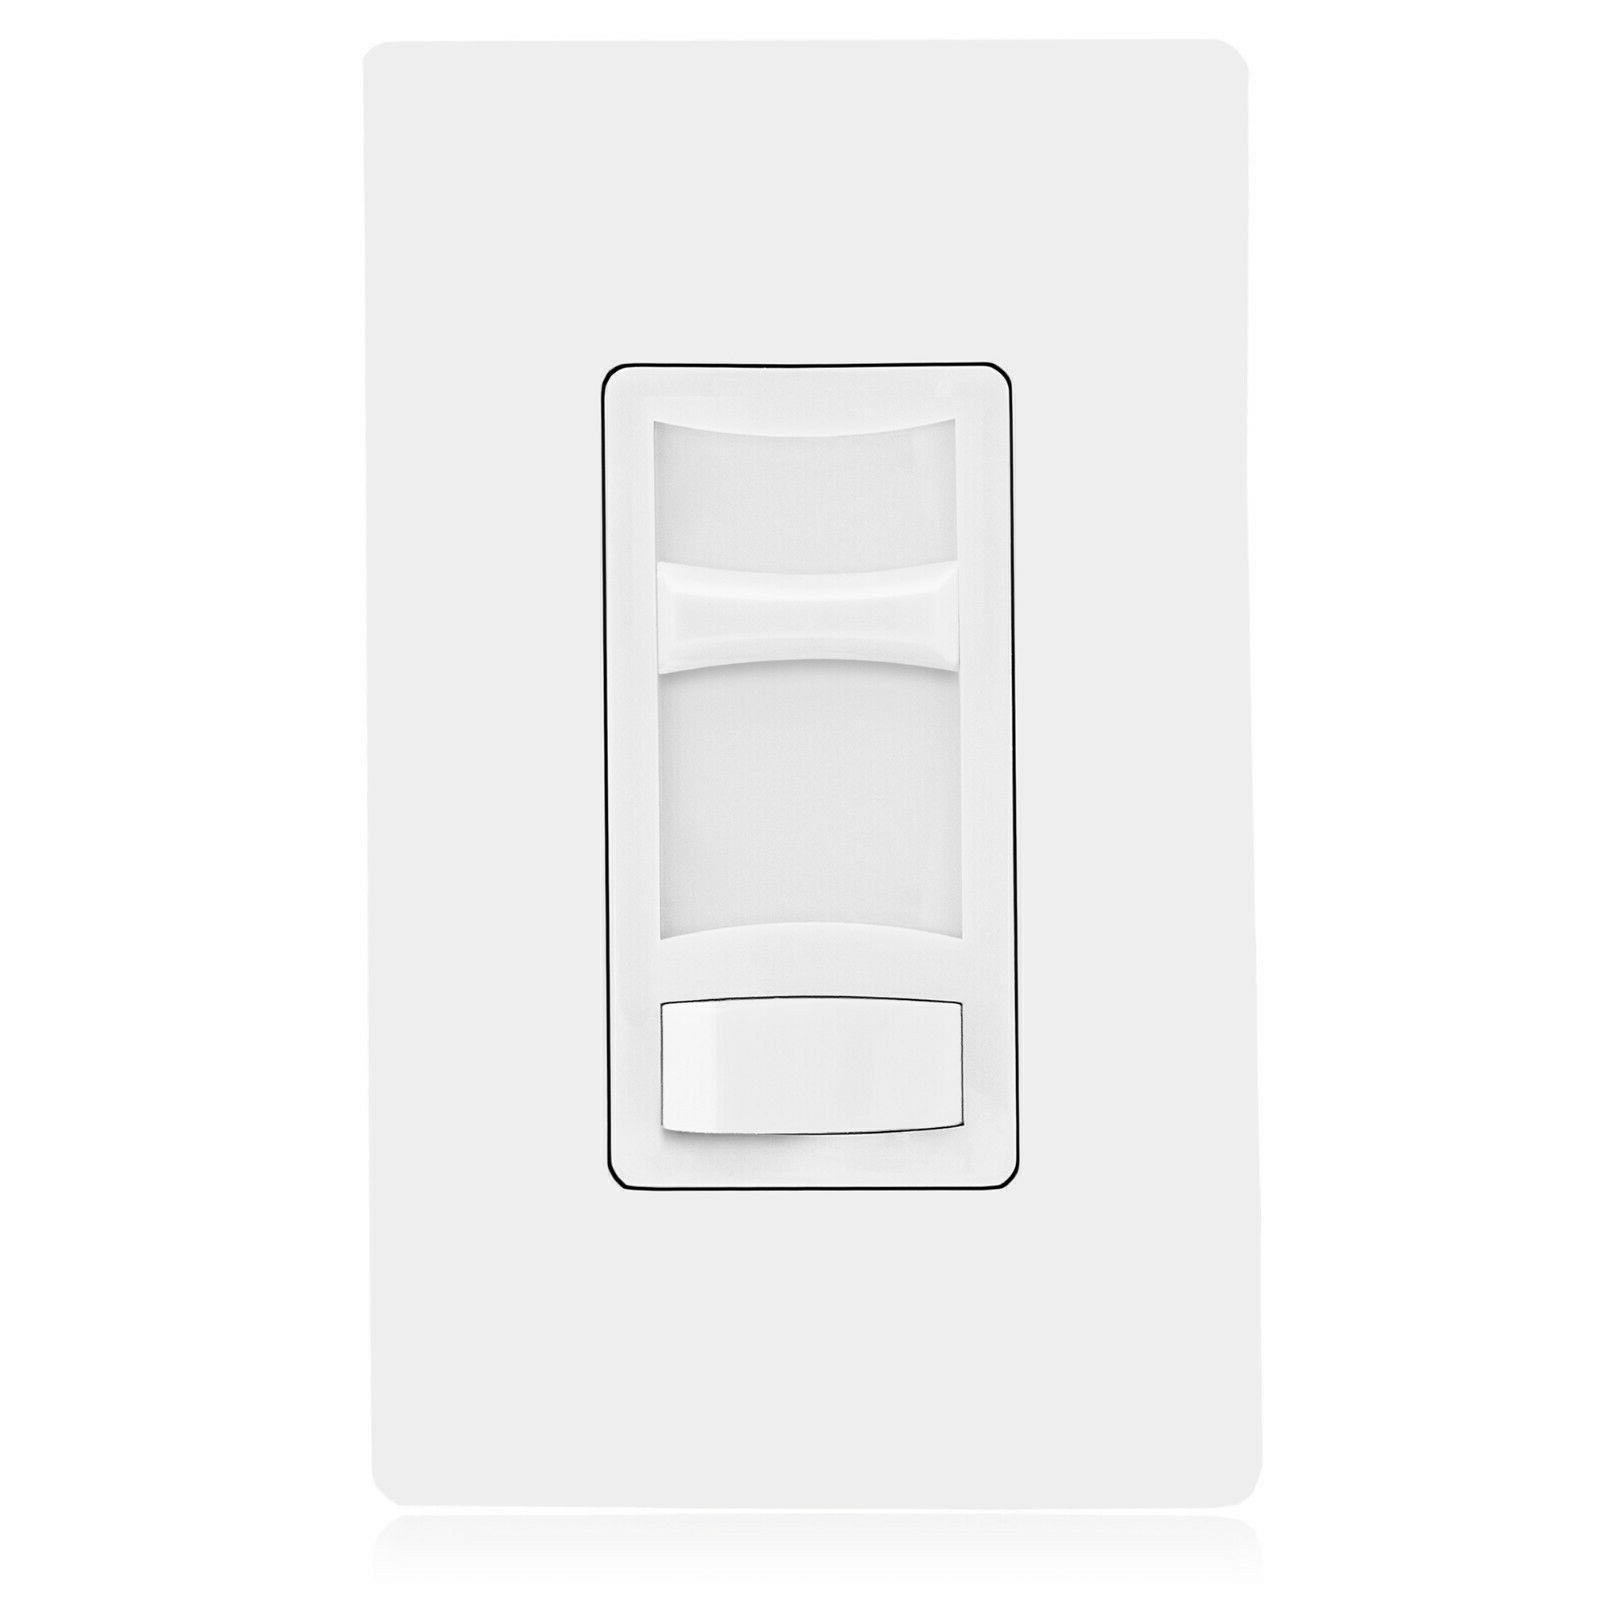 Maxxima 3  Single Pole Led Dimmer Switch